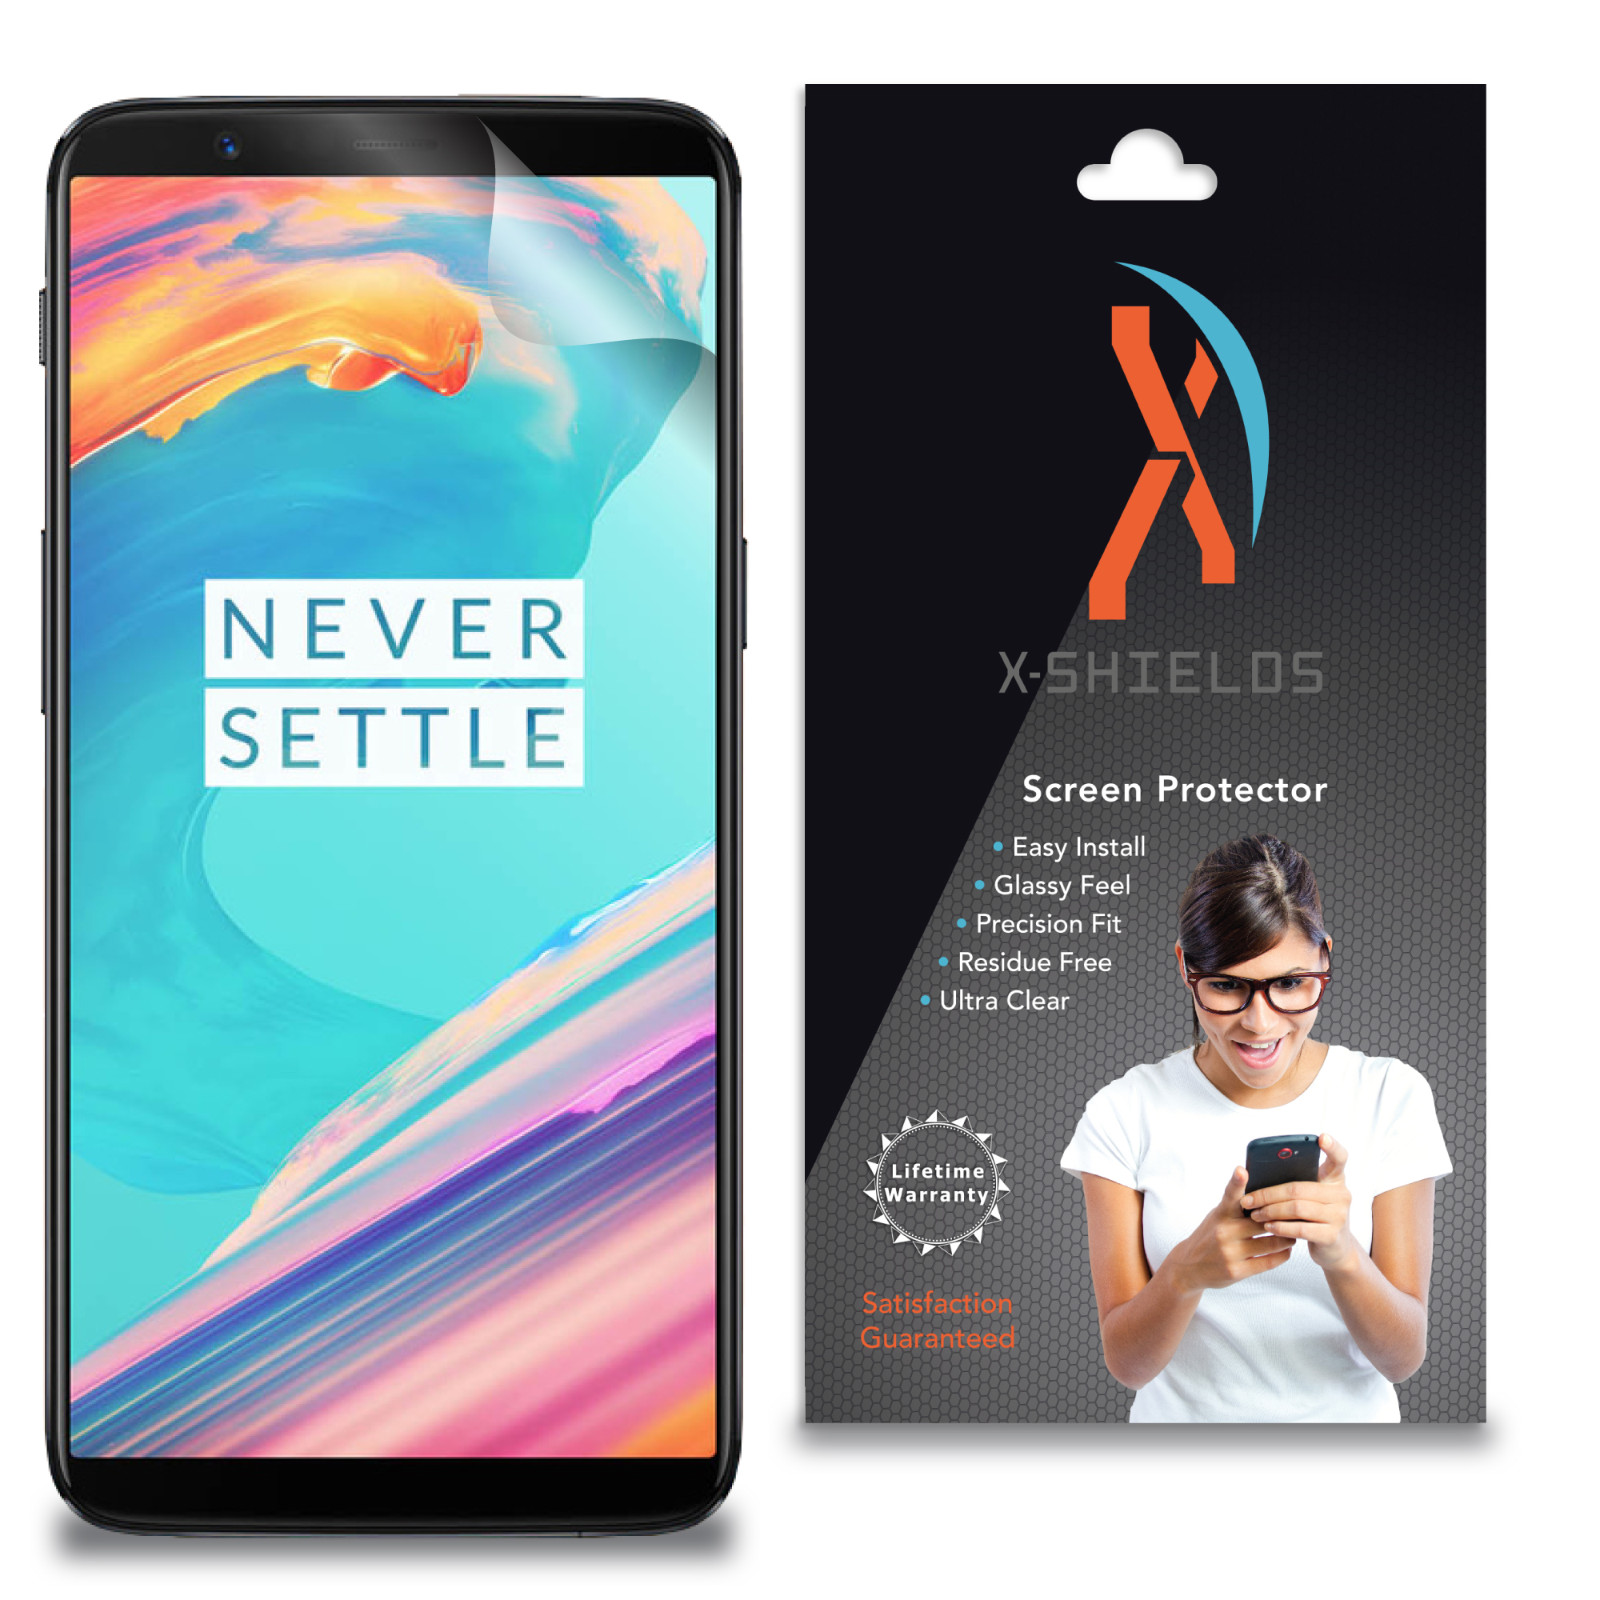 XShields© High Definition (HD+) Screen Protectors for OnePlus 5T (Maximum Clarity) Super Easy Installation [5-Pack] Lifetime Warranty, Advanced Touchscreen Accuracy